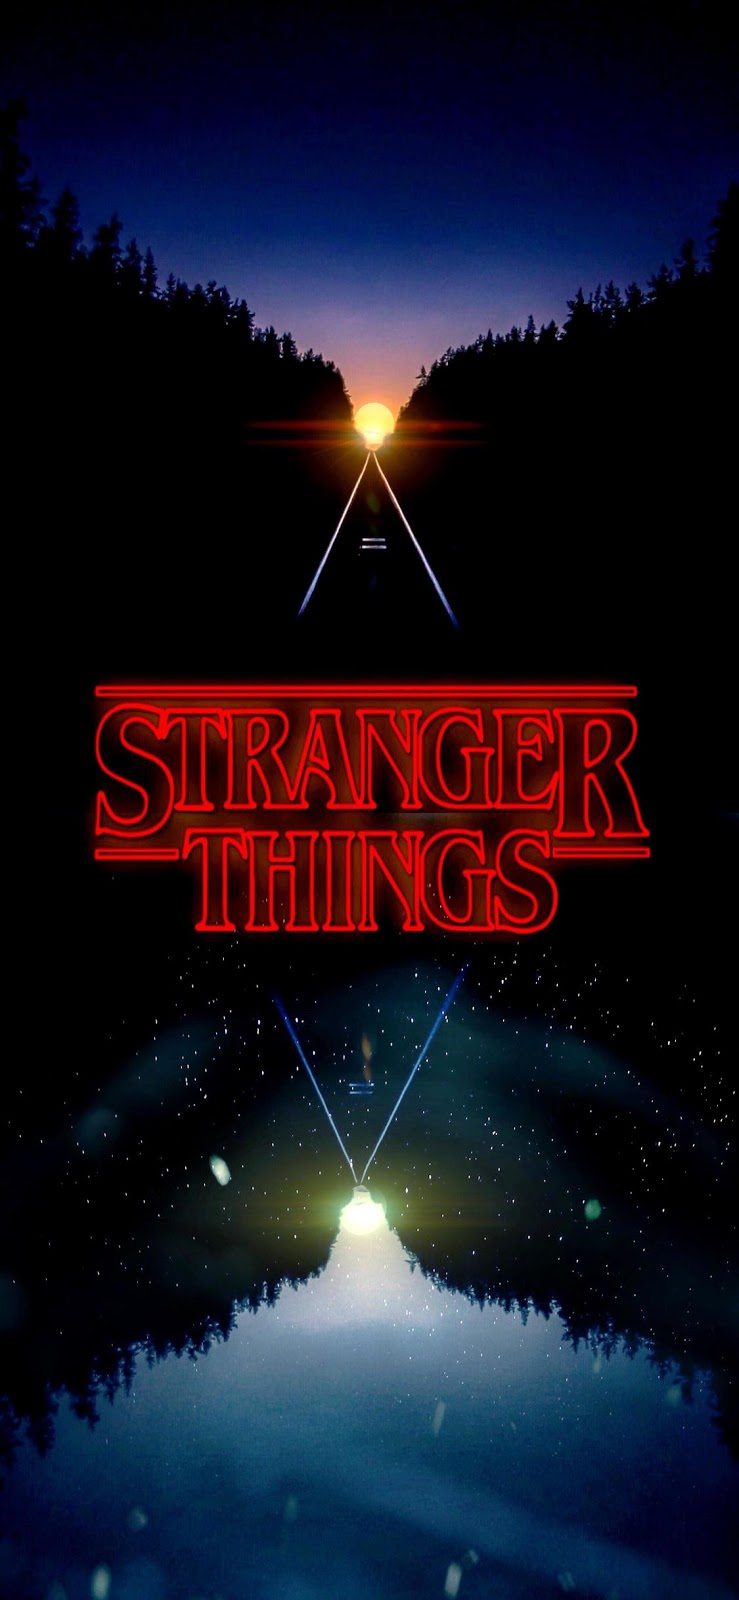 Best Stranger Things Wallpaper for iPhone X Free Download ...